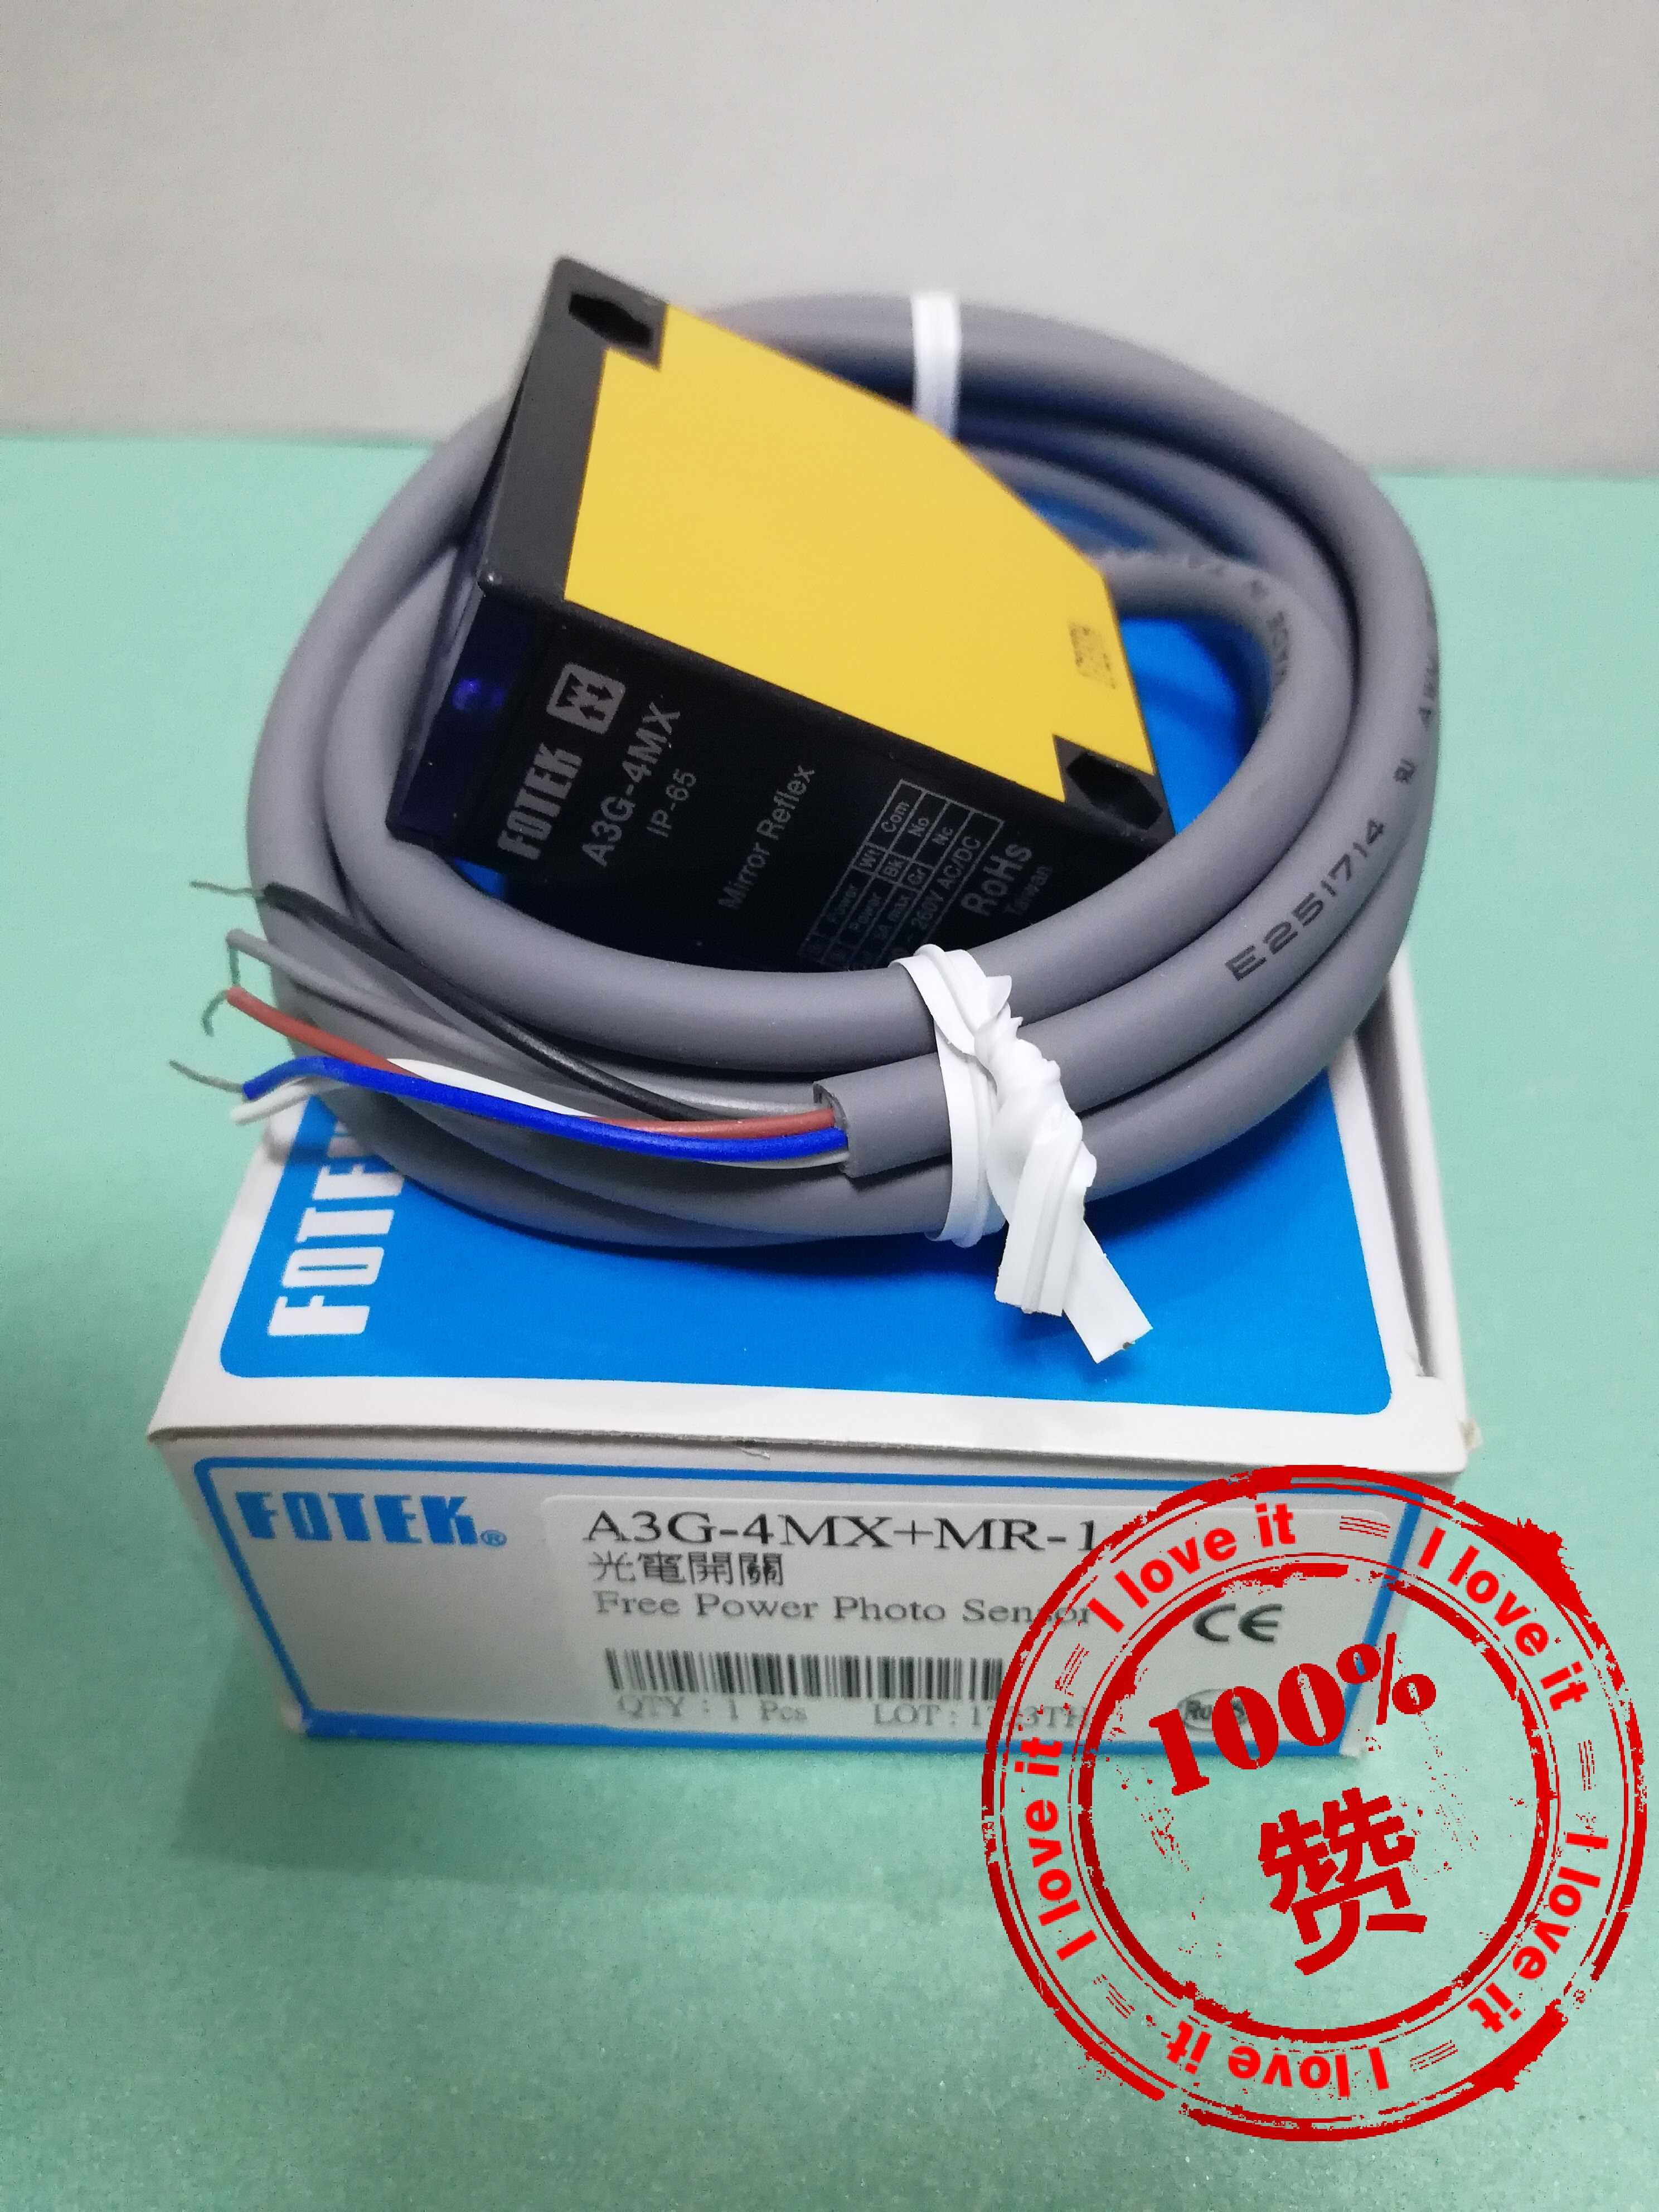 New imported a3g-4mx photoelectric switch sensor A3G-4MX+MR-1New imported a3g-4mx photoelectric switch sensor A3G-4MX+MR-1